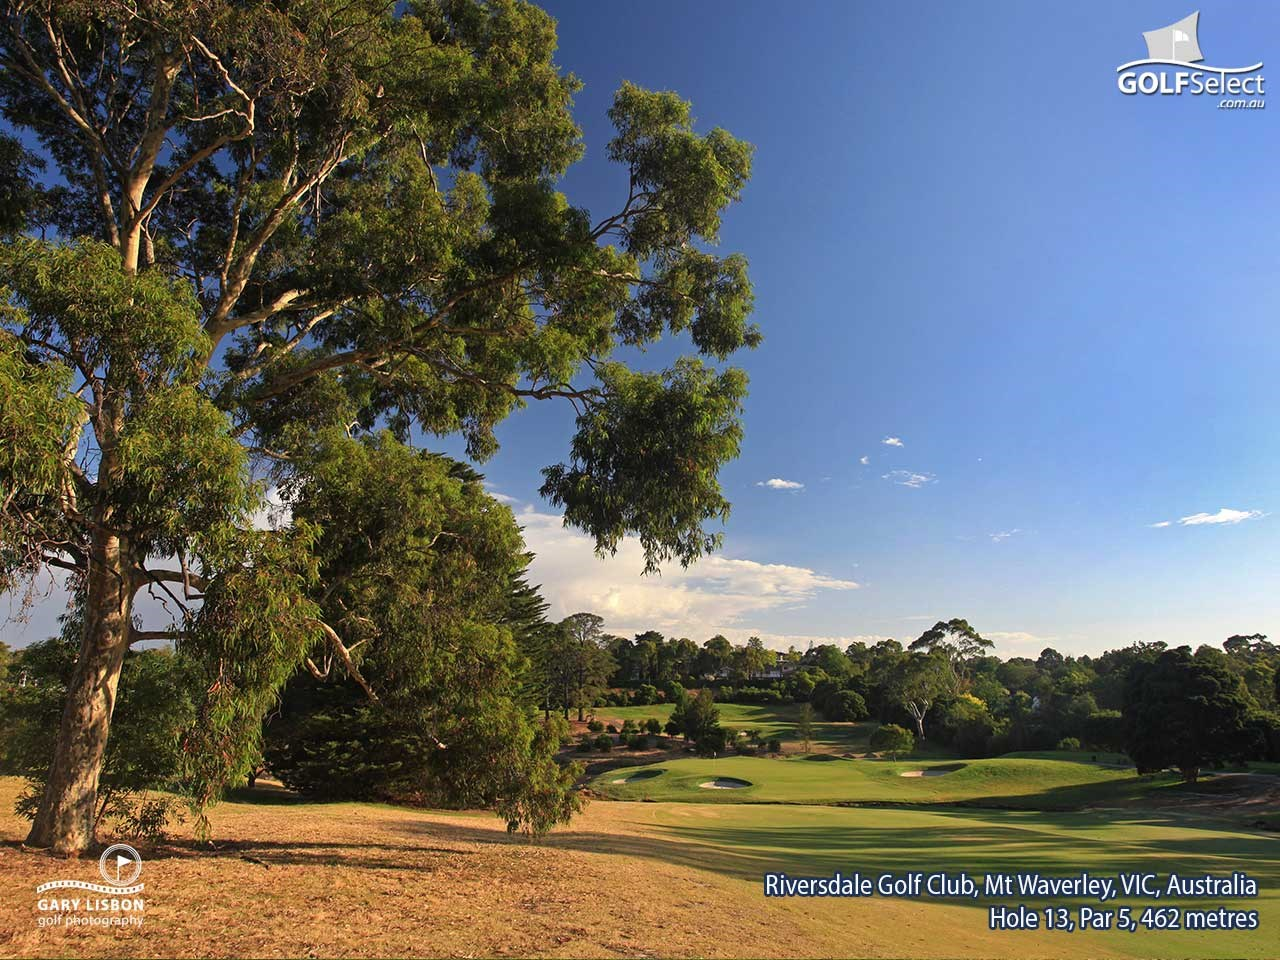 Riversdale Golf Club Hole 13, Par 5, 467 metres